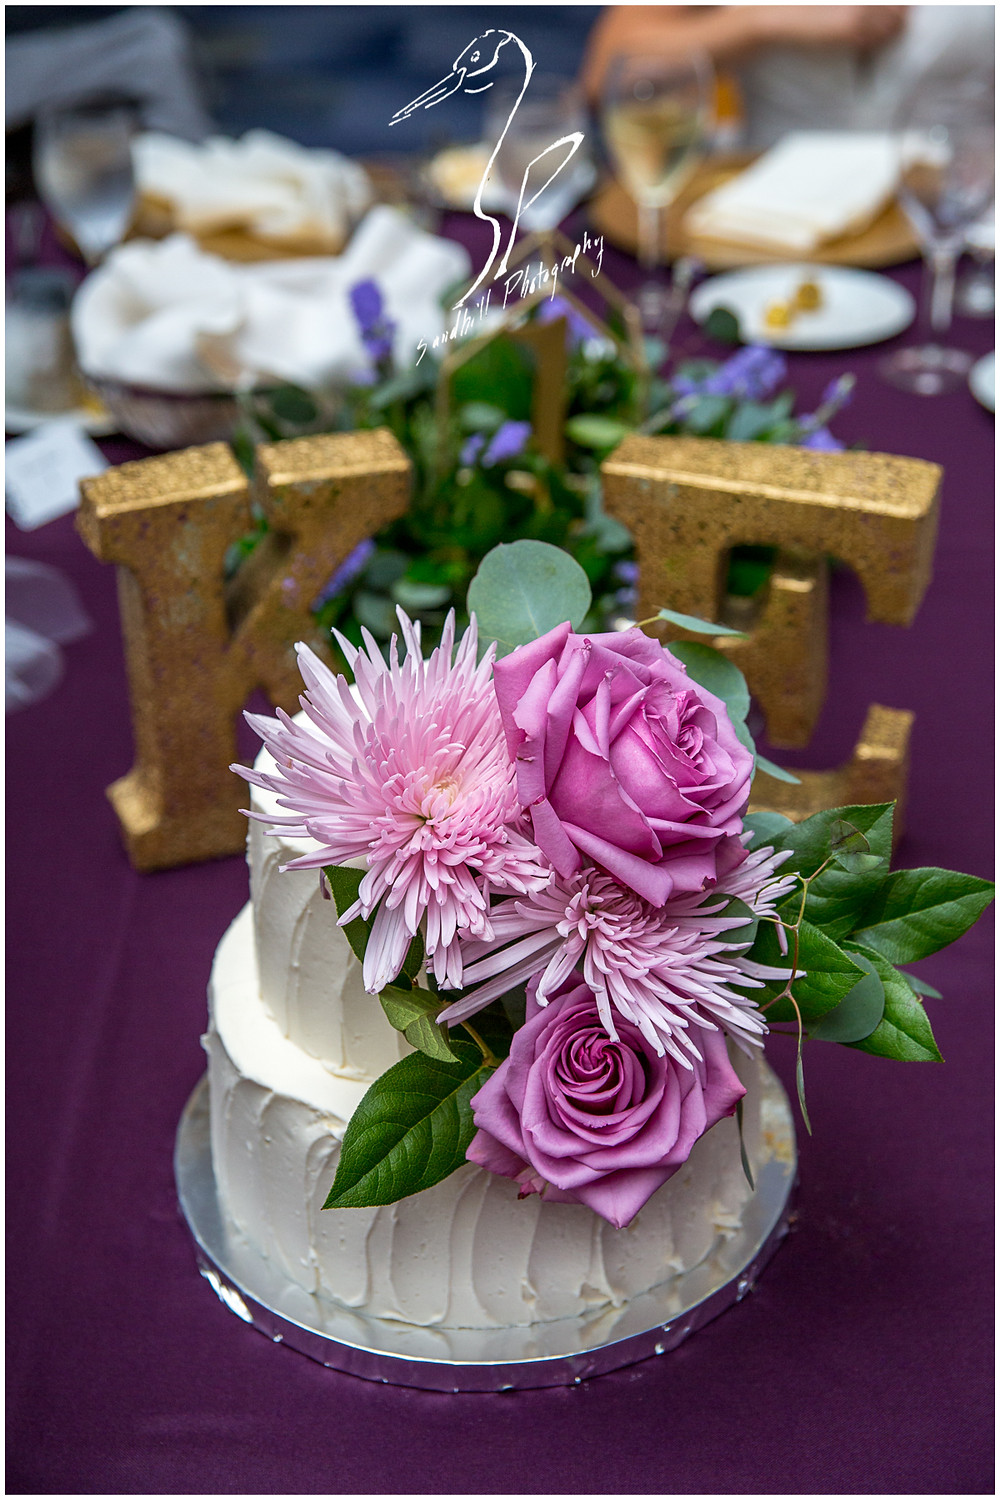 Van Wezel Wedding Photography, detail picture of cake by Mattison's, white cake with purple flowers, Sandhill Photography, Sarasota